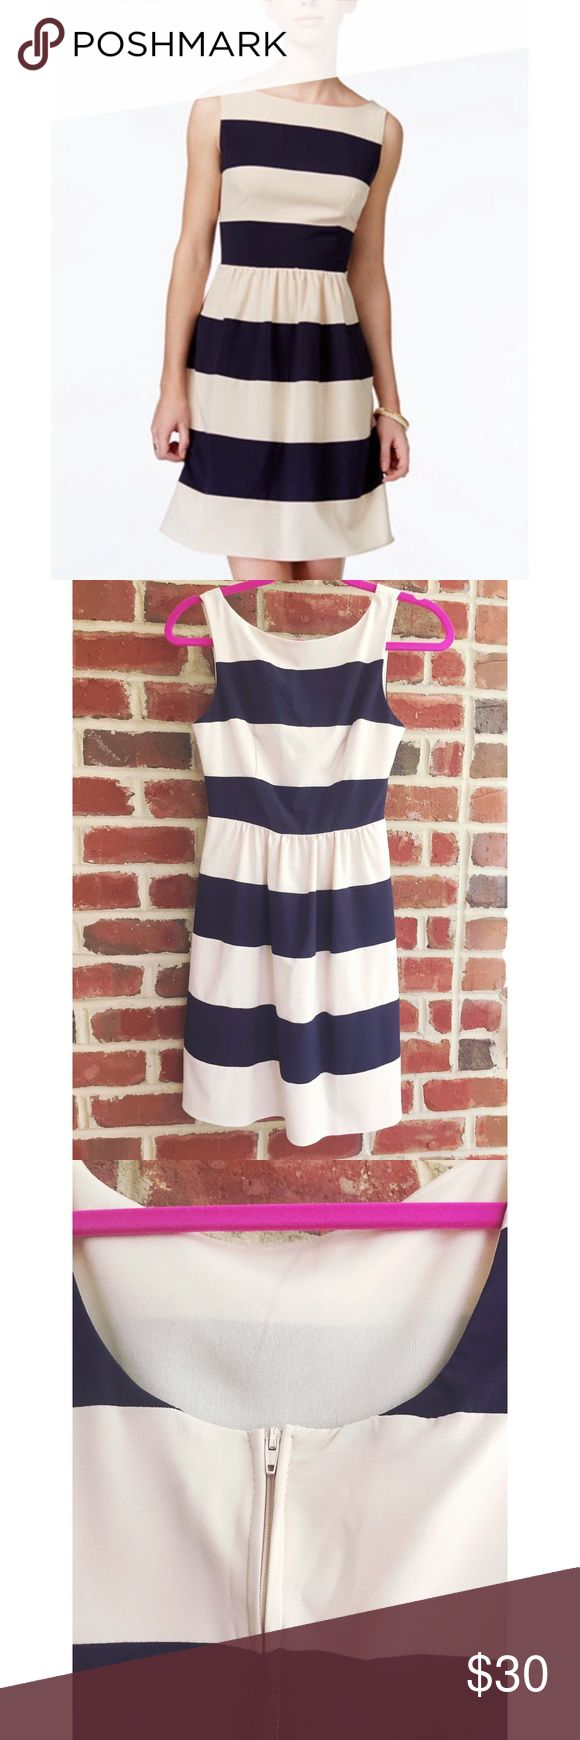 B. Darlin Nautical Sundress This dress is so cute and is perfect for work and play! The back has a scoop with a zip up closure. It's a must have for your closet! Only worn once! Fits like a 2. B Darlin Dresses Mini